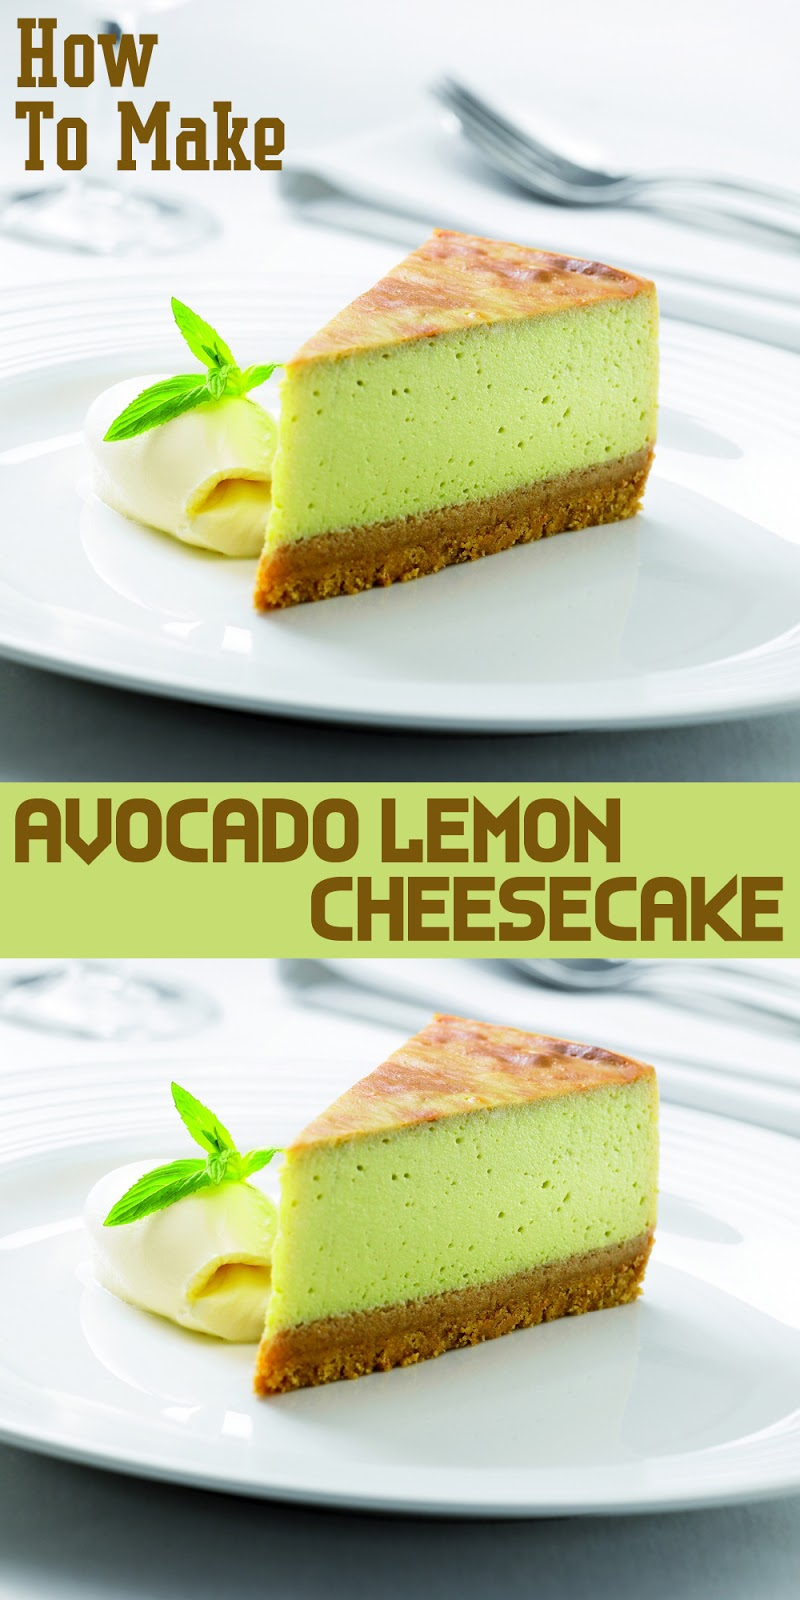 AVOCADO LEMON CHEESECAKE